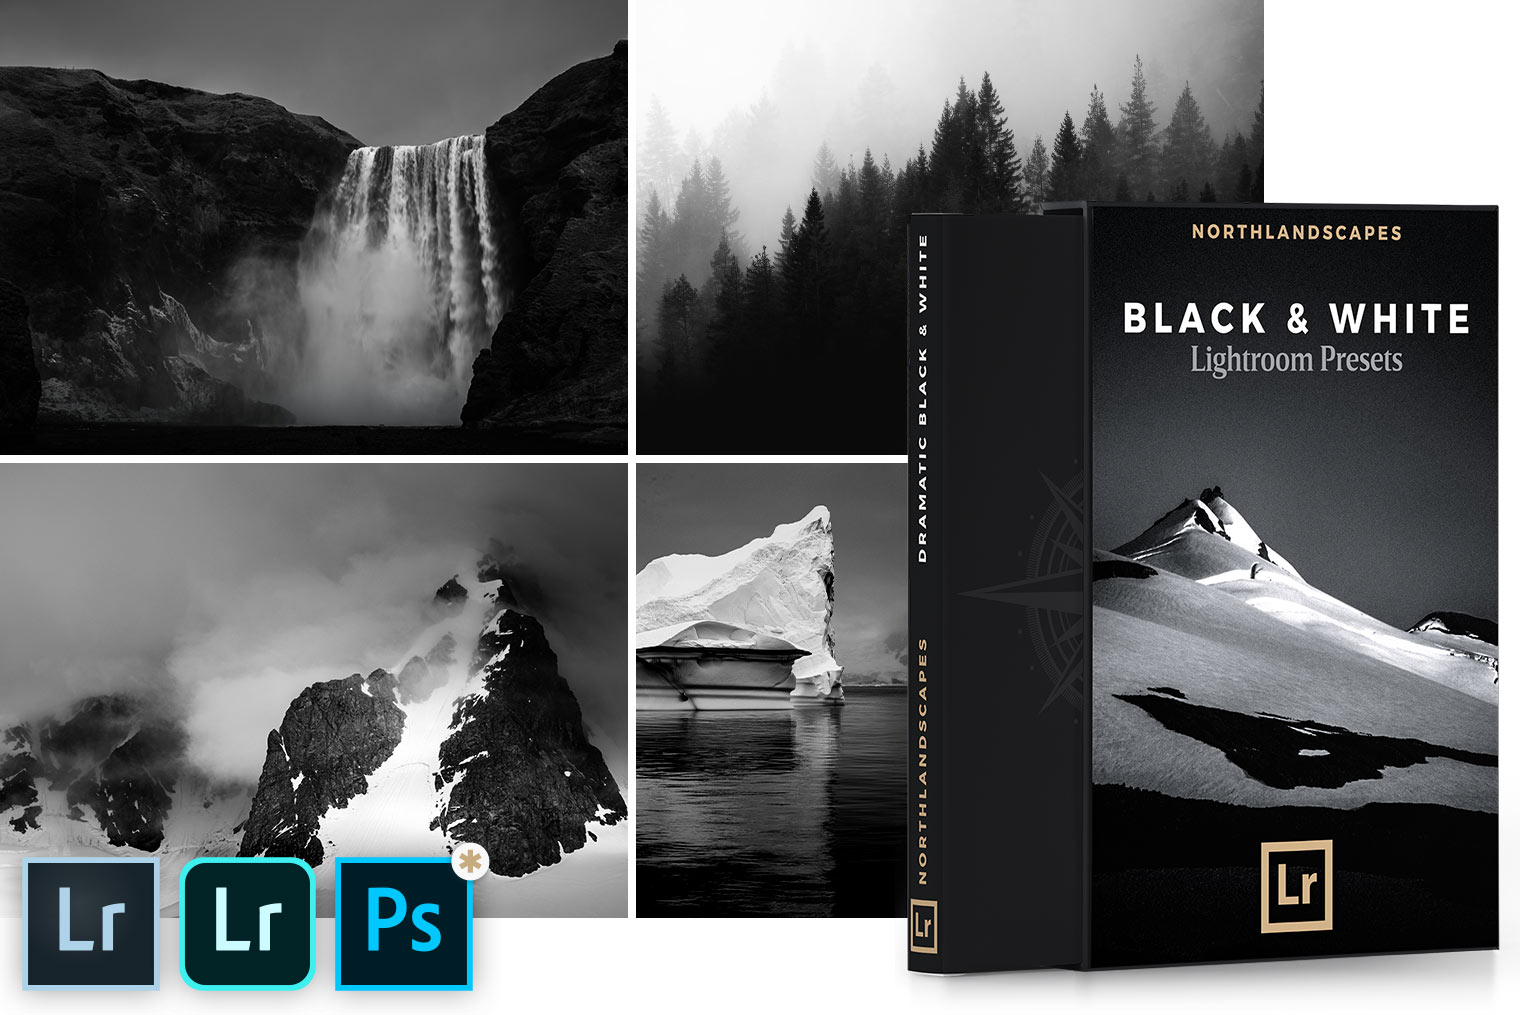 Lightroom Presets for Black & White Photography